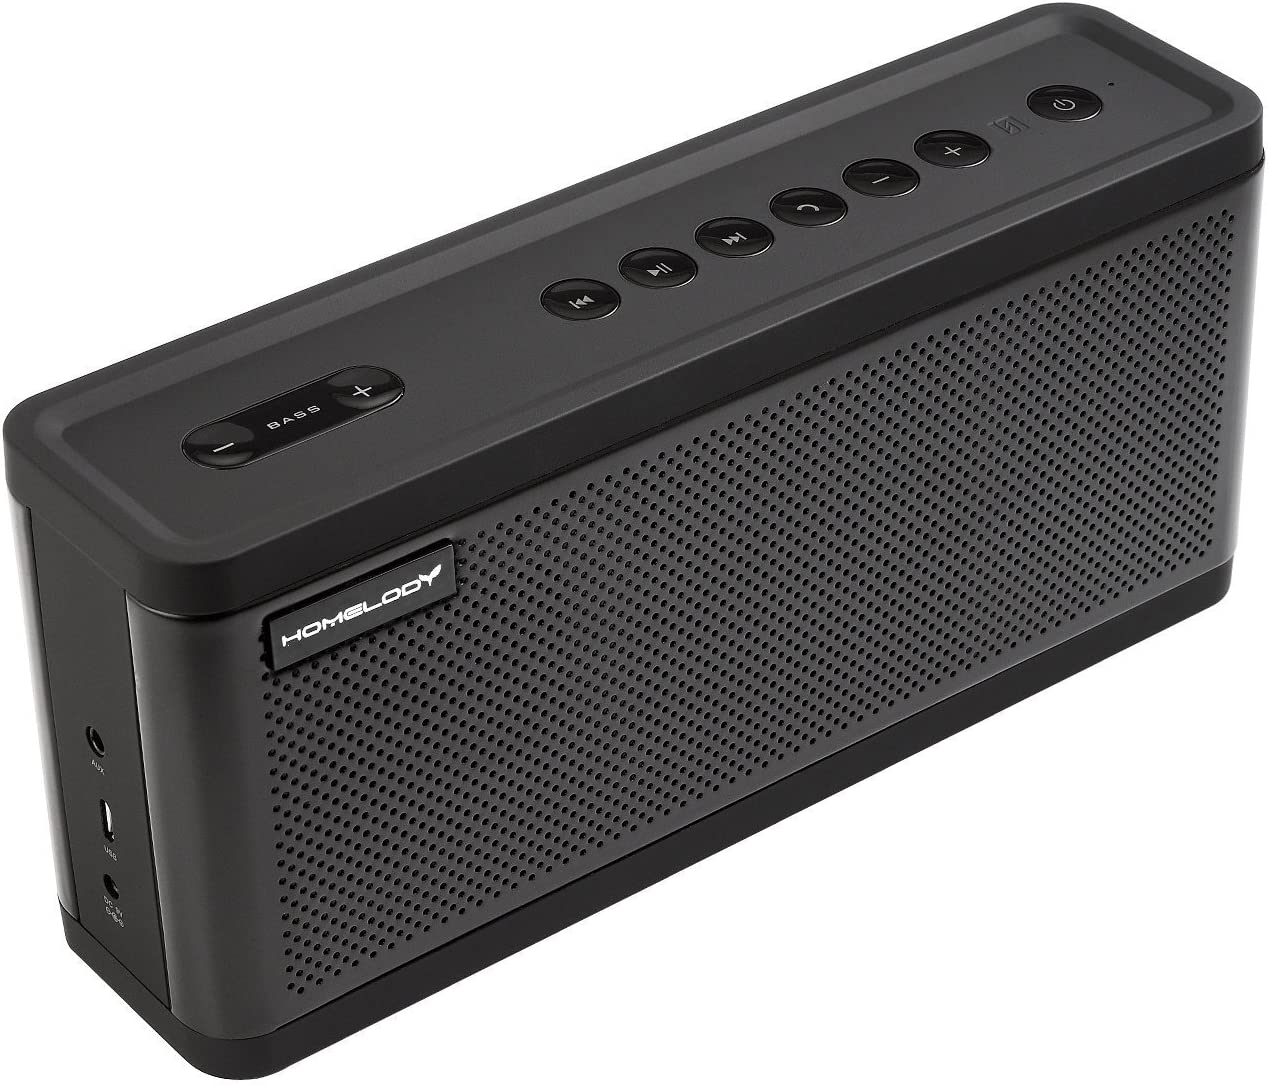 Homelody 2*5W+15W Super Bass Altavoz Bluetooth 4.0 Tecnología de ...